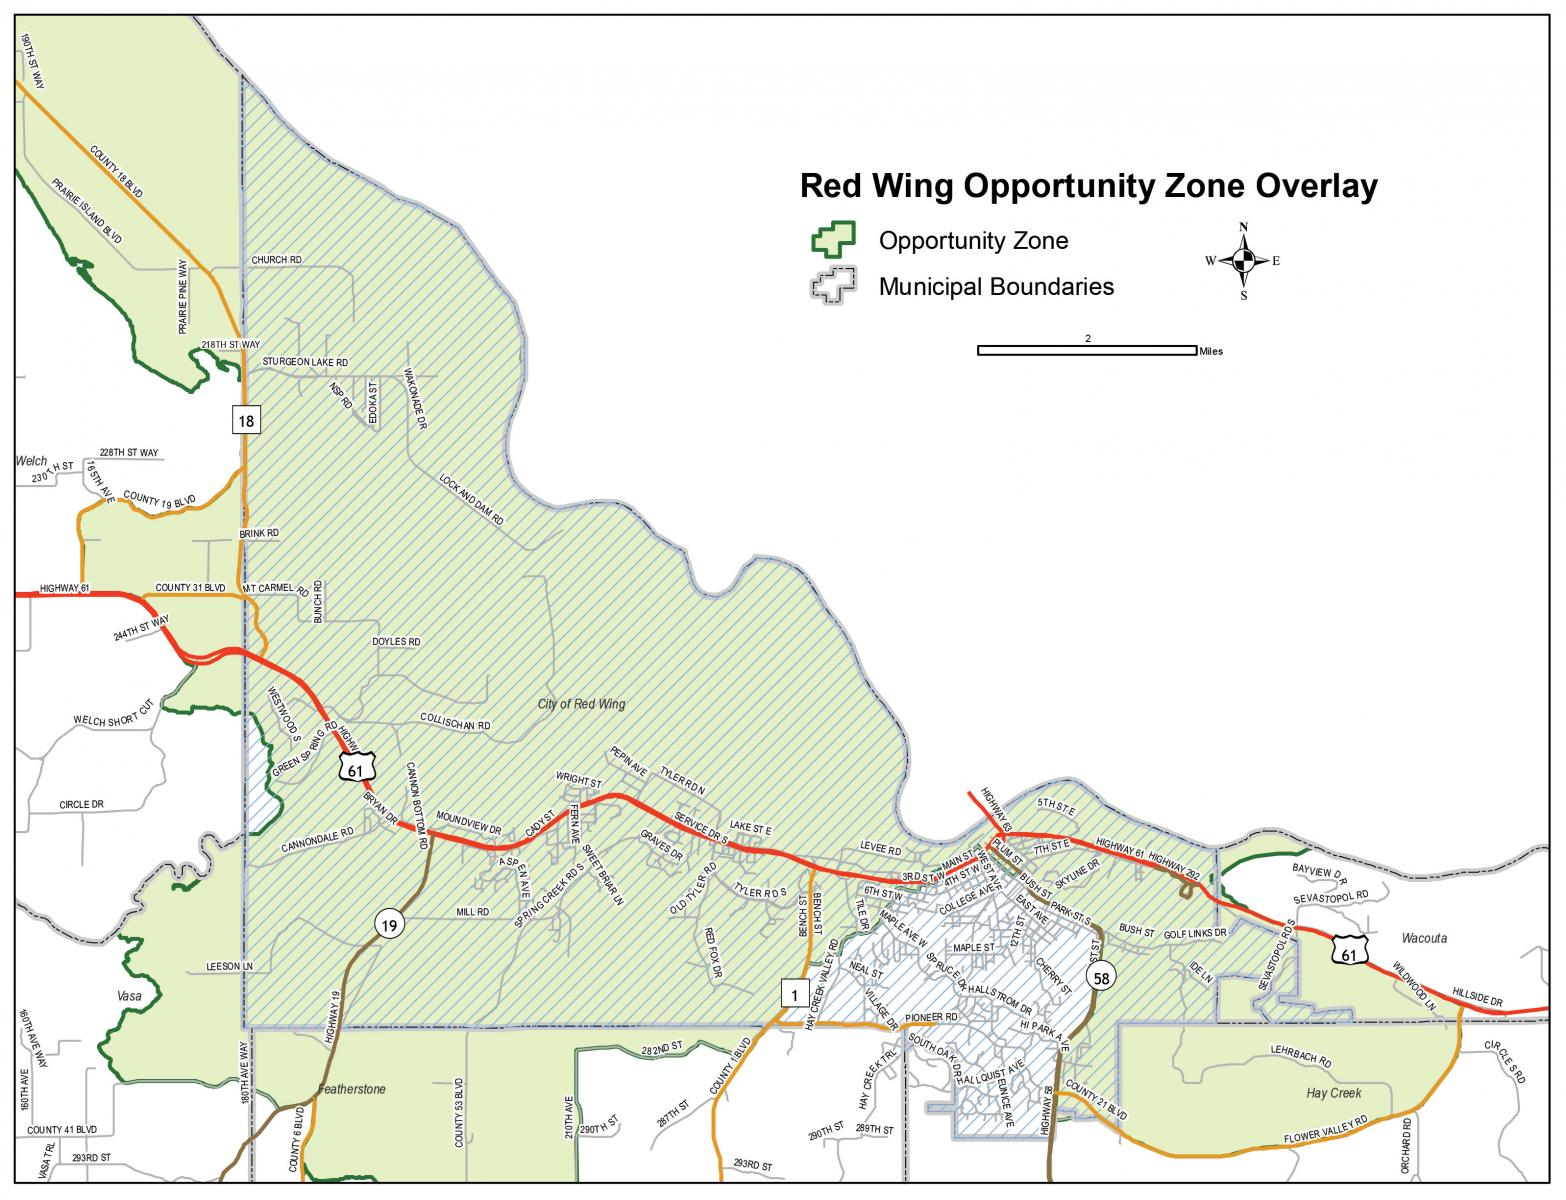 red wing opportunity zones